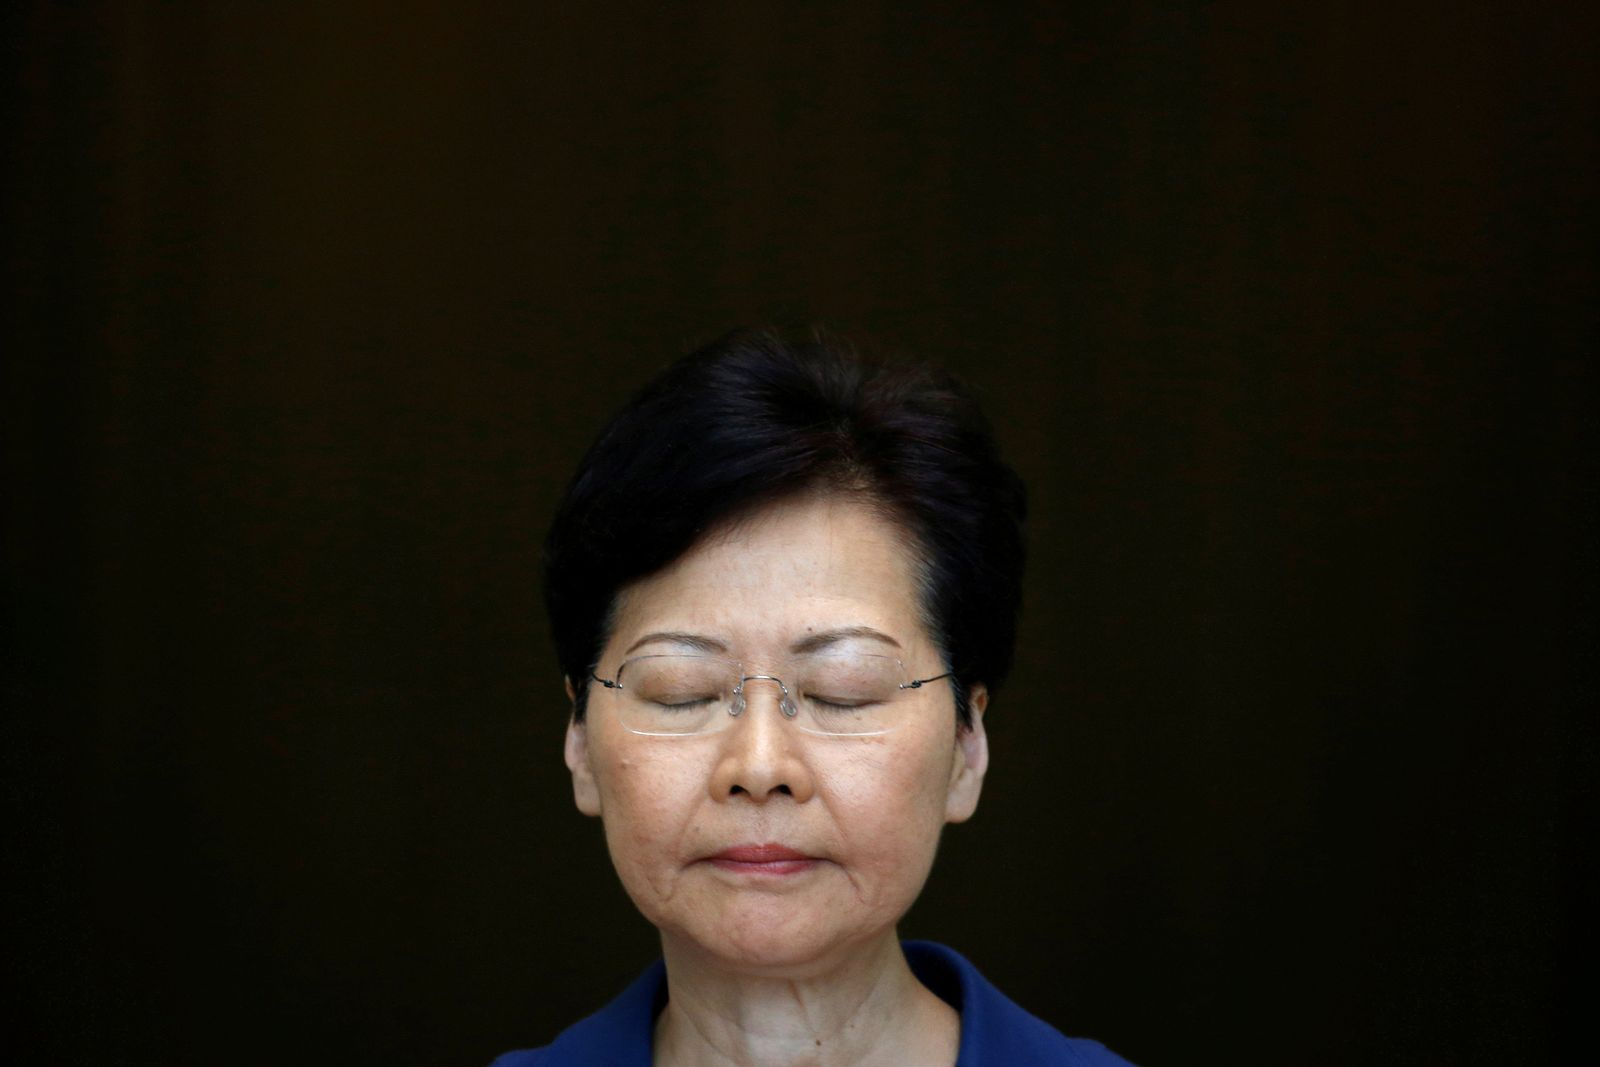 HONGKONG-PROTESTS Carrie Lam